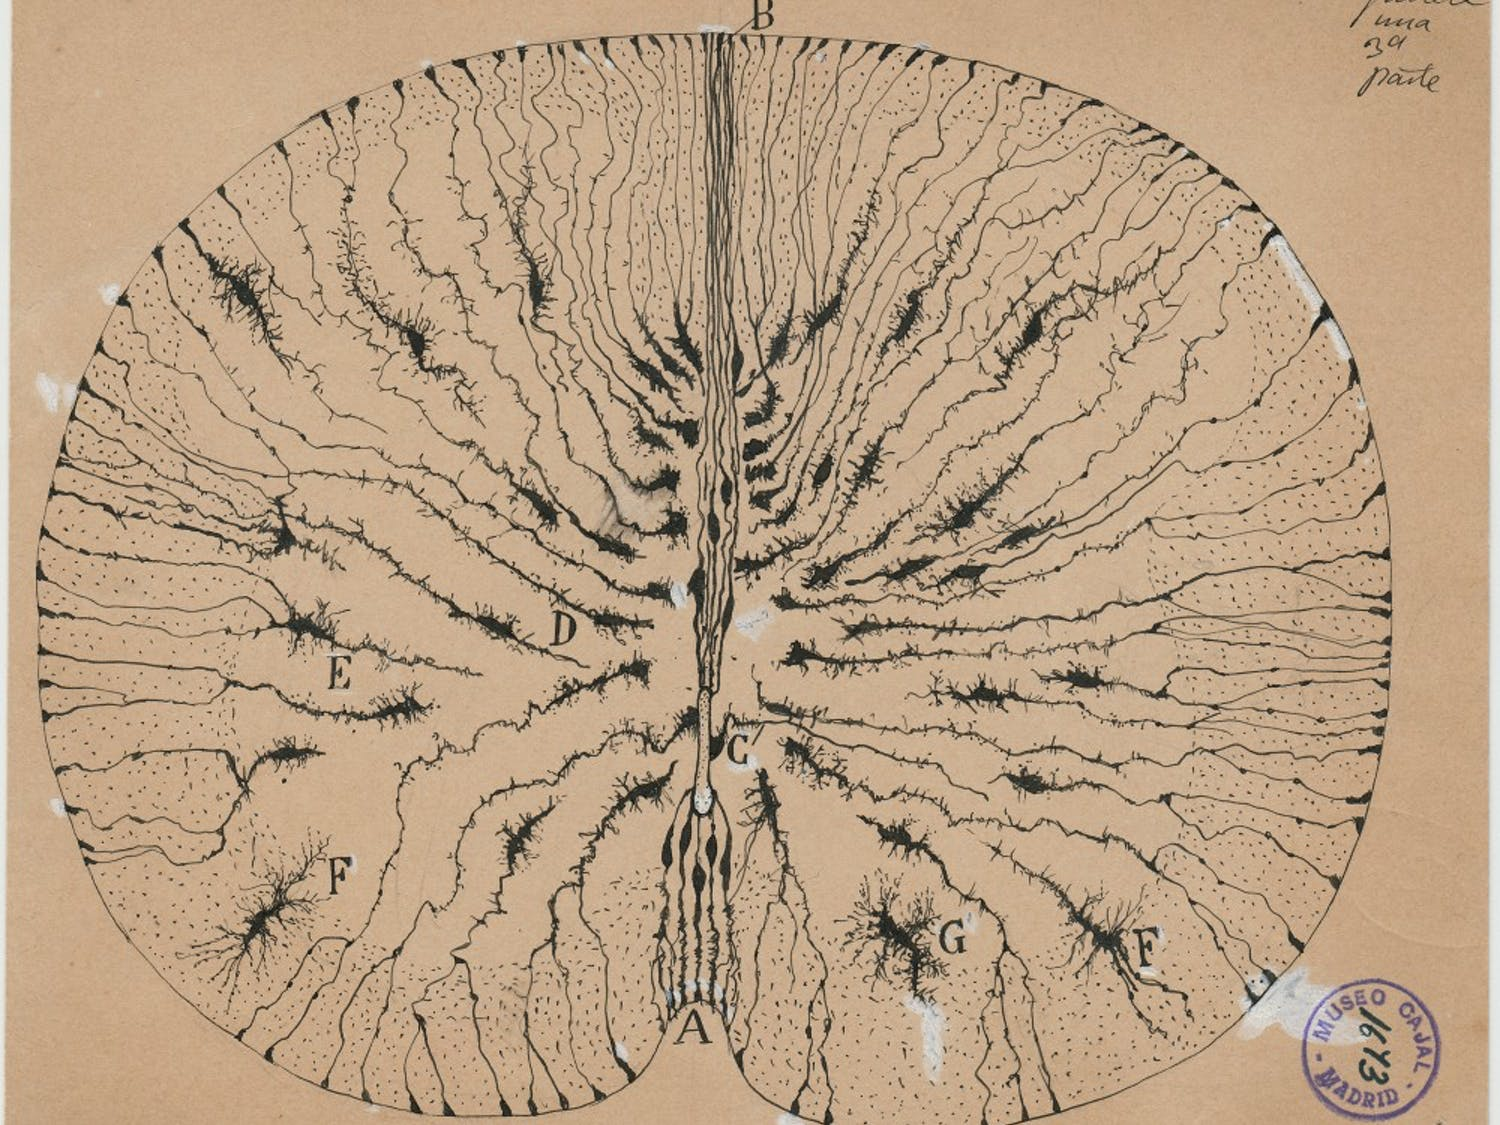 This is one of the 3,000 drawings of the brain that Santiago Ramón y Cajal drew in his lifetime. It is one of the 80 displayed in the Ackland's The Beautiful Brain: The Drawings of Santiago Ramón y Cajal exhibit.  Photo contributed by The Ackland Art Museum